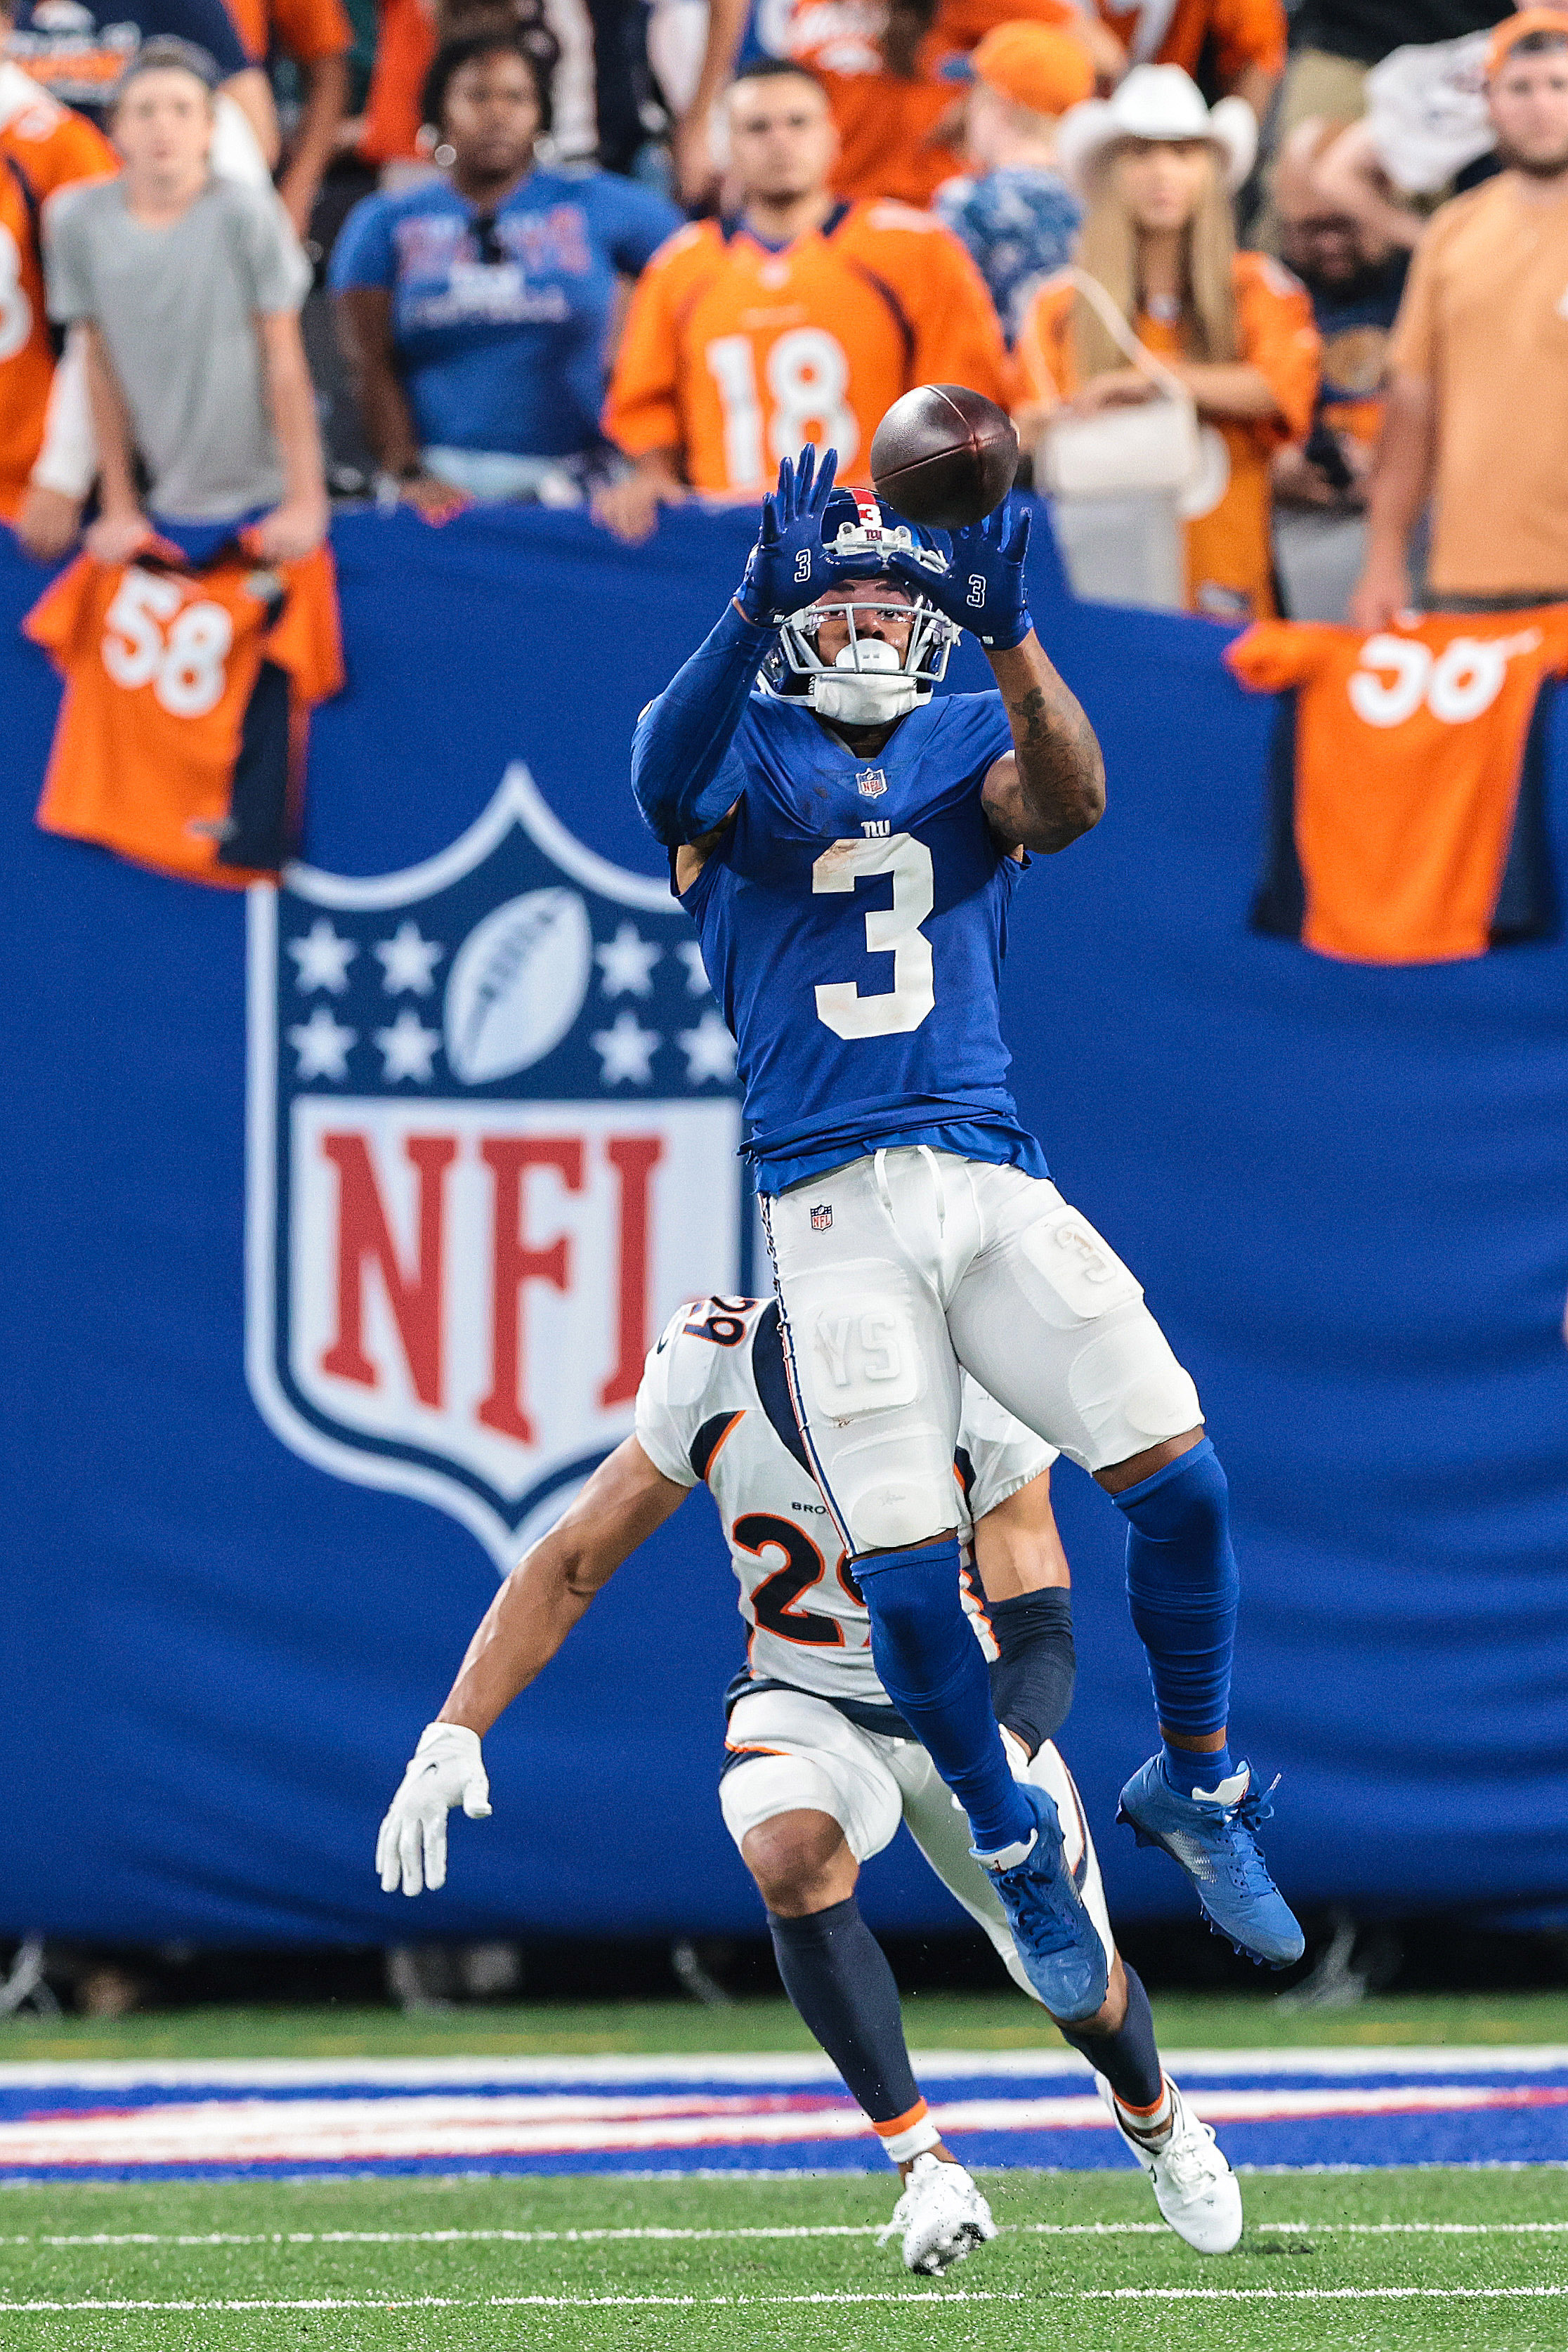 New York Giants wide receiver Sterling Shepard (3) catches the ball over Denver Broncos cornerback Bryce Callahan (29) during the second half at MetLife Stadium.